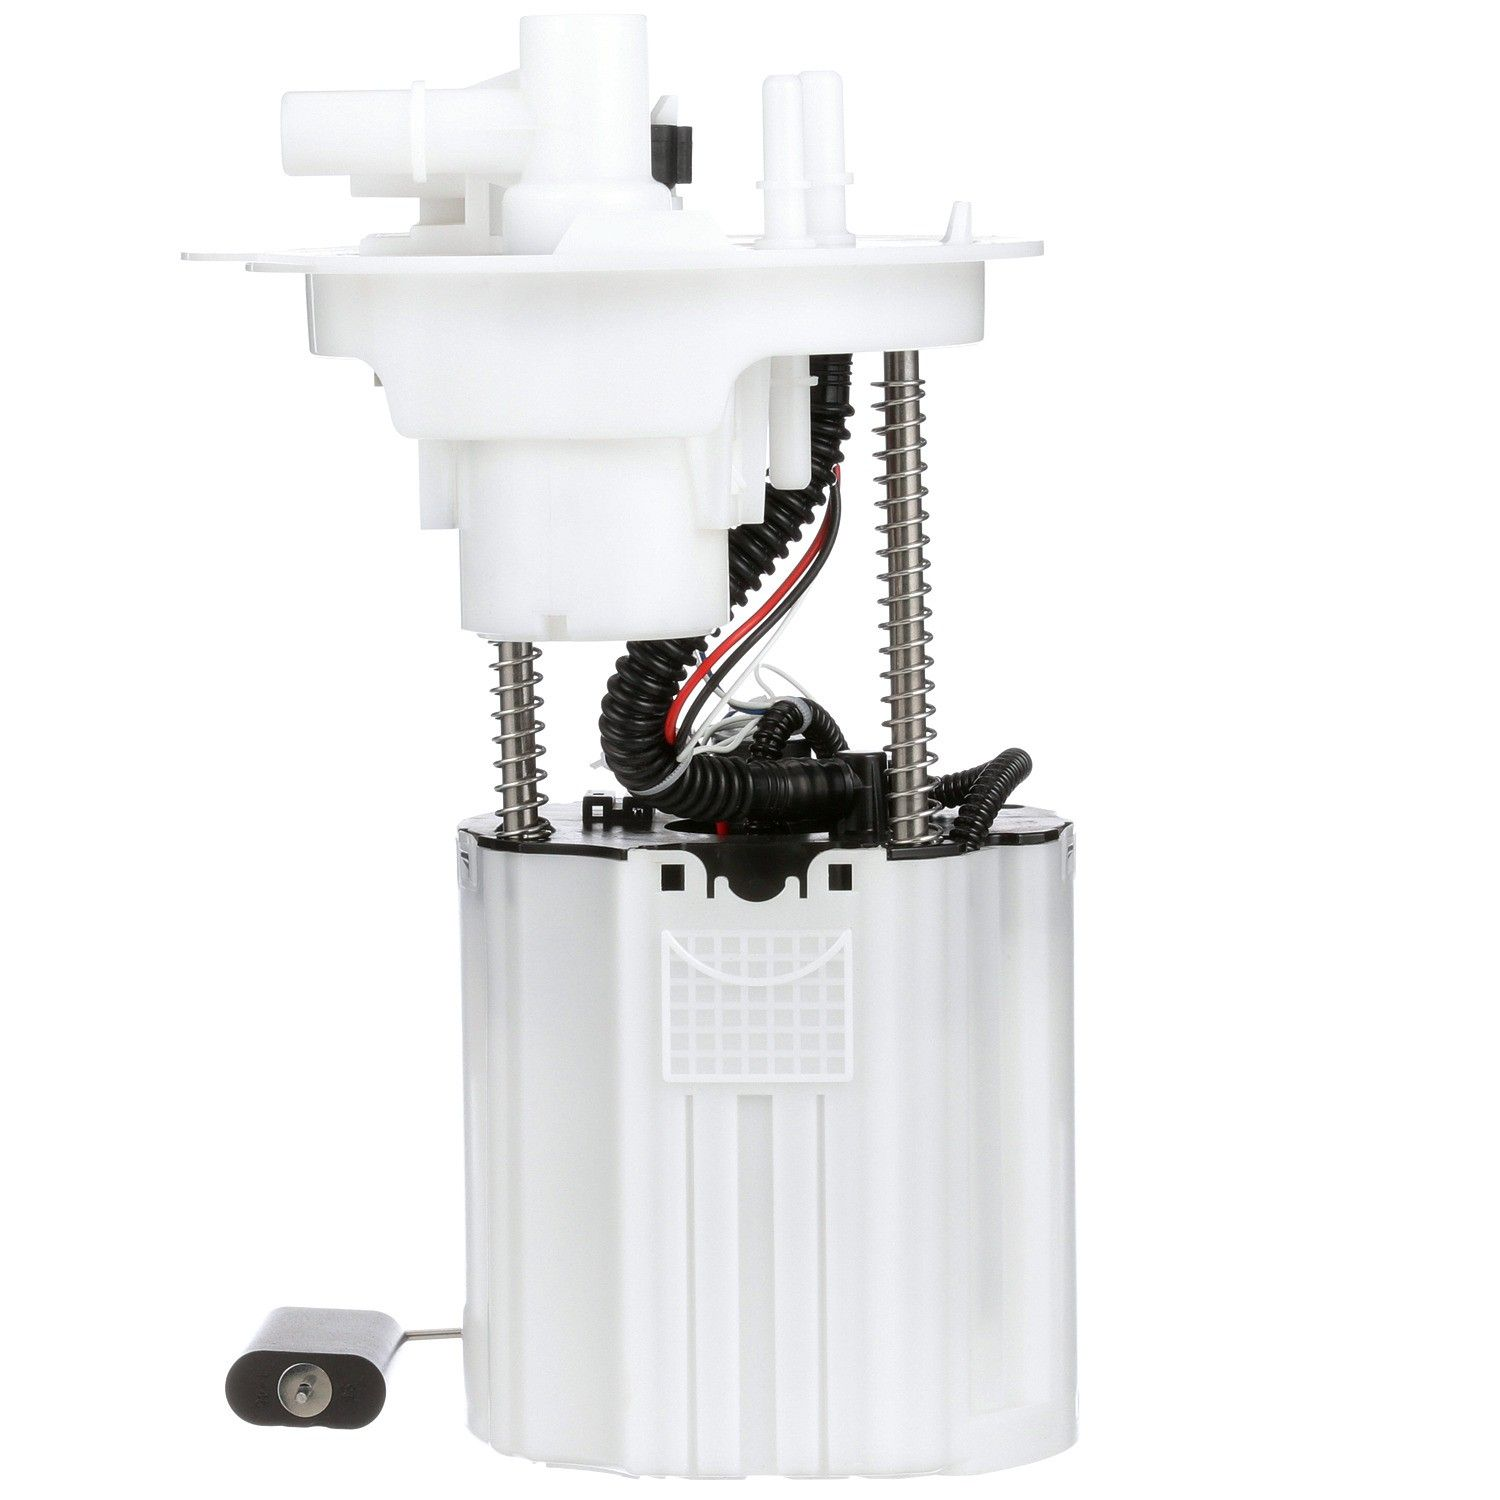 Delphi FG1384 Fuel Pump Module Assembly